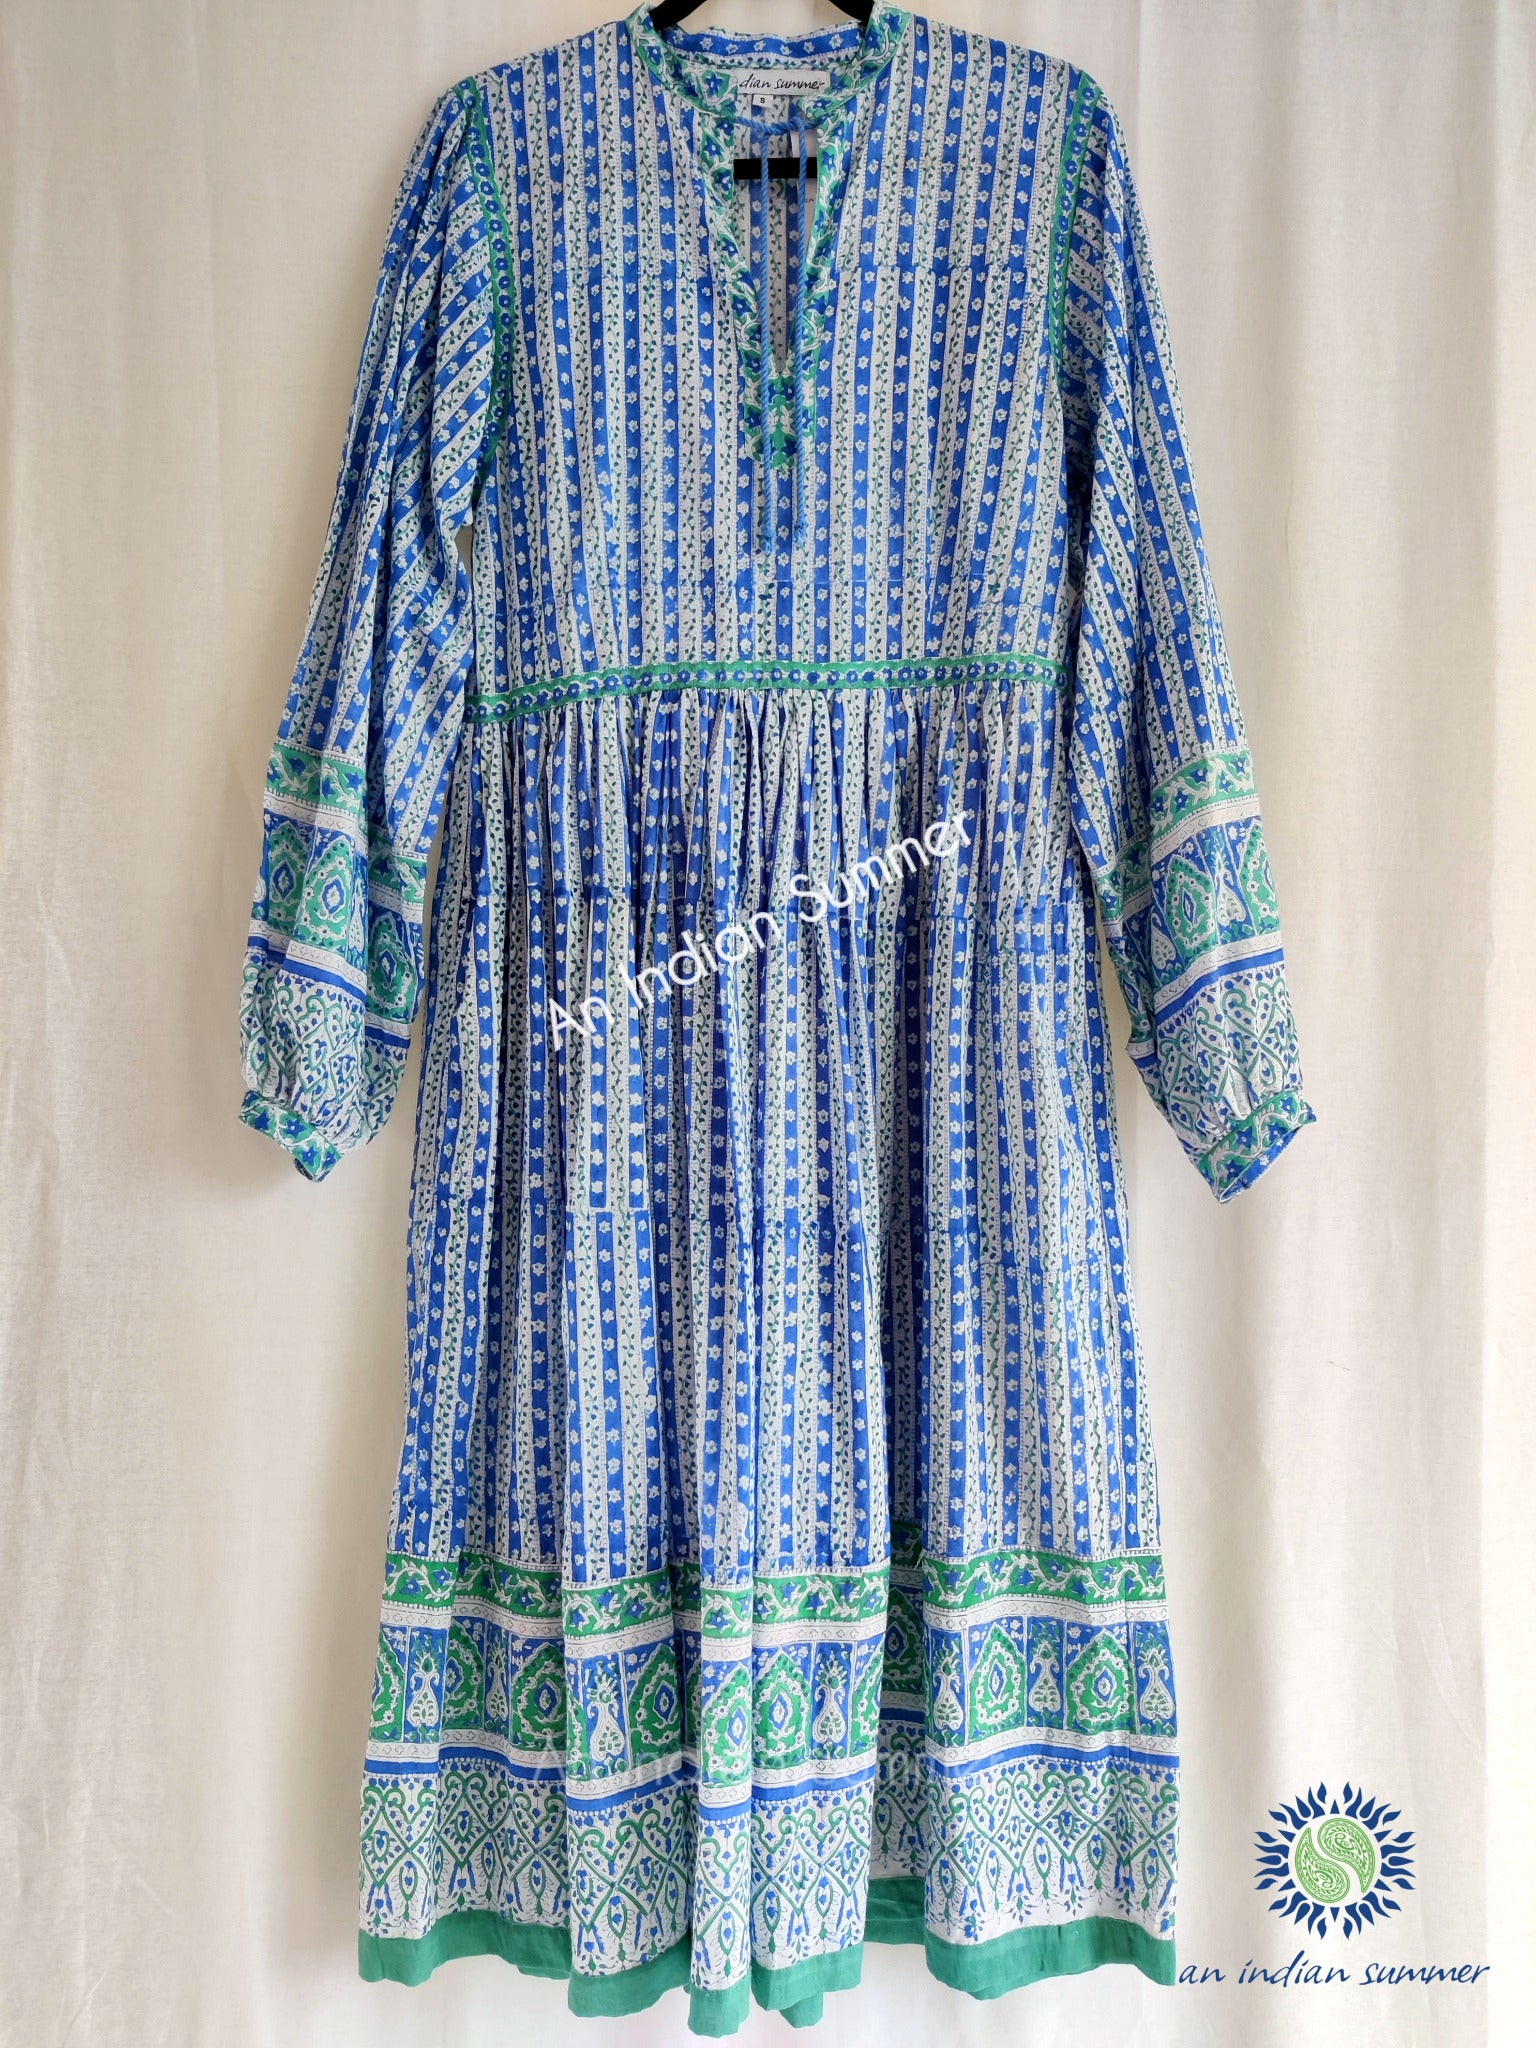 Jennifer Dress | Blue Green | Vintage Style Dress | Hand Block Printed | Cotton Voile | An Indian Summer | Seasonless Timeless Sustainable Ethical Authentic Artisan Conscious Clothing Lifestyle Brand